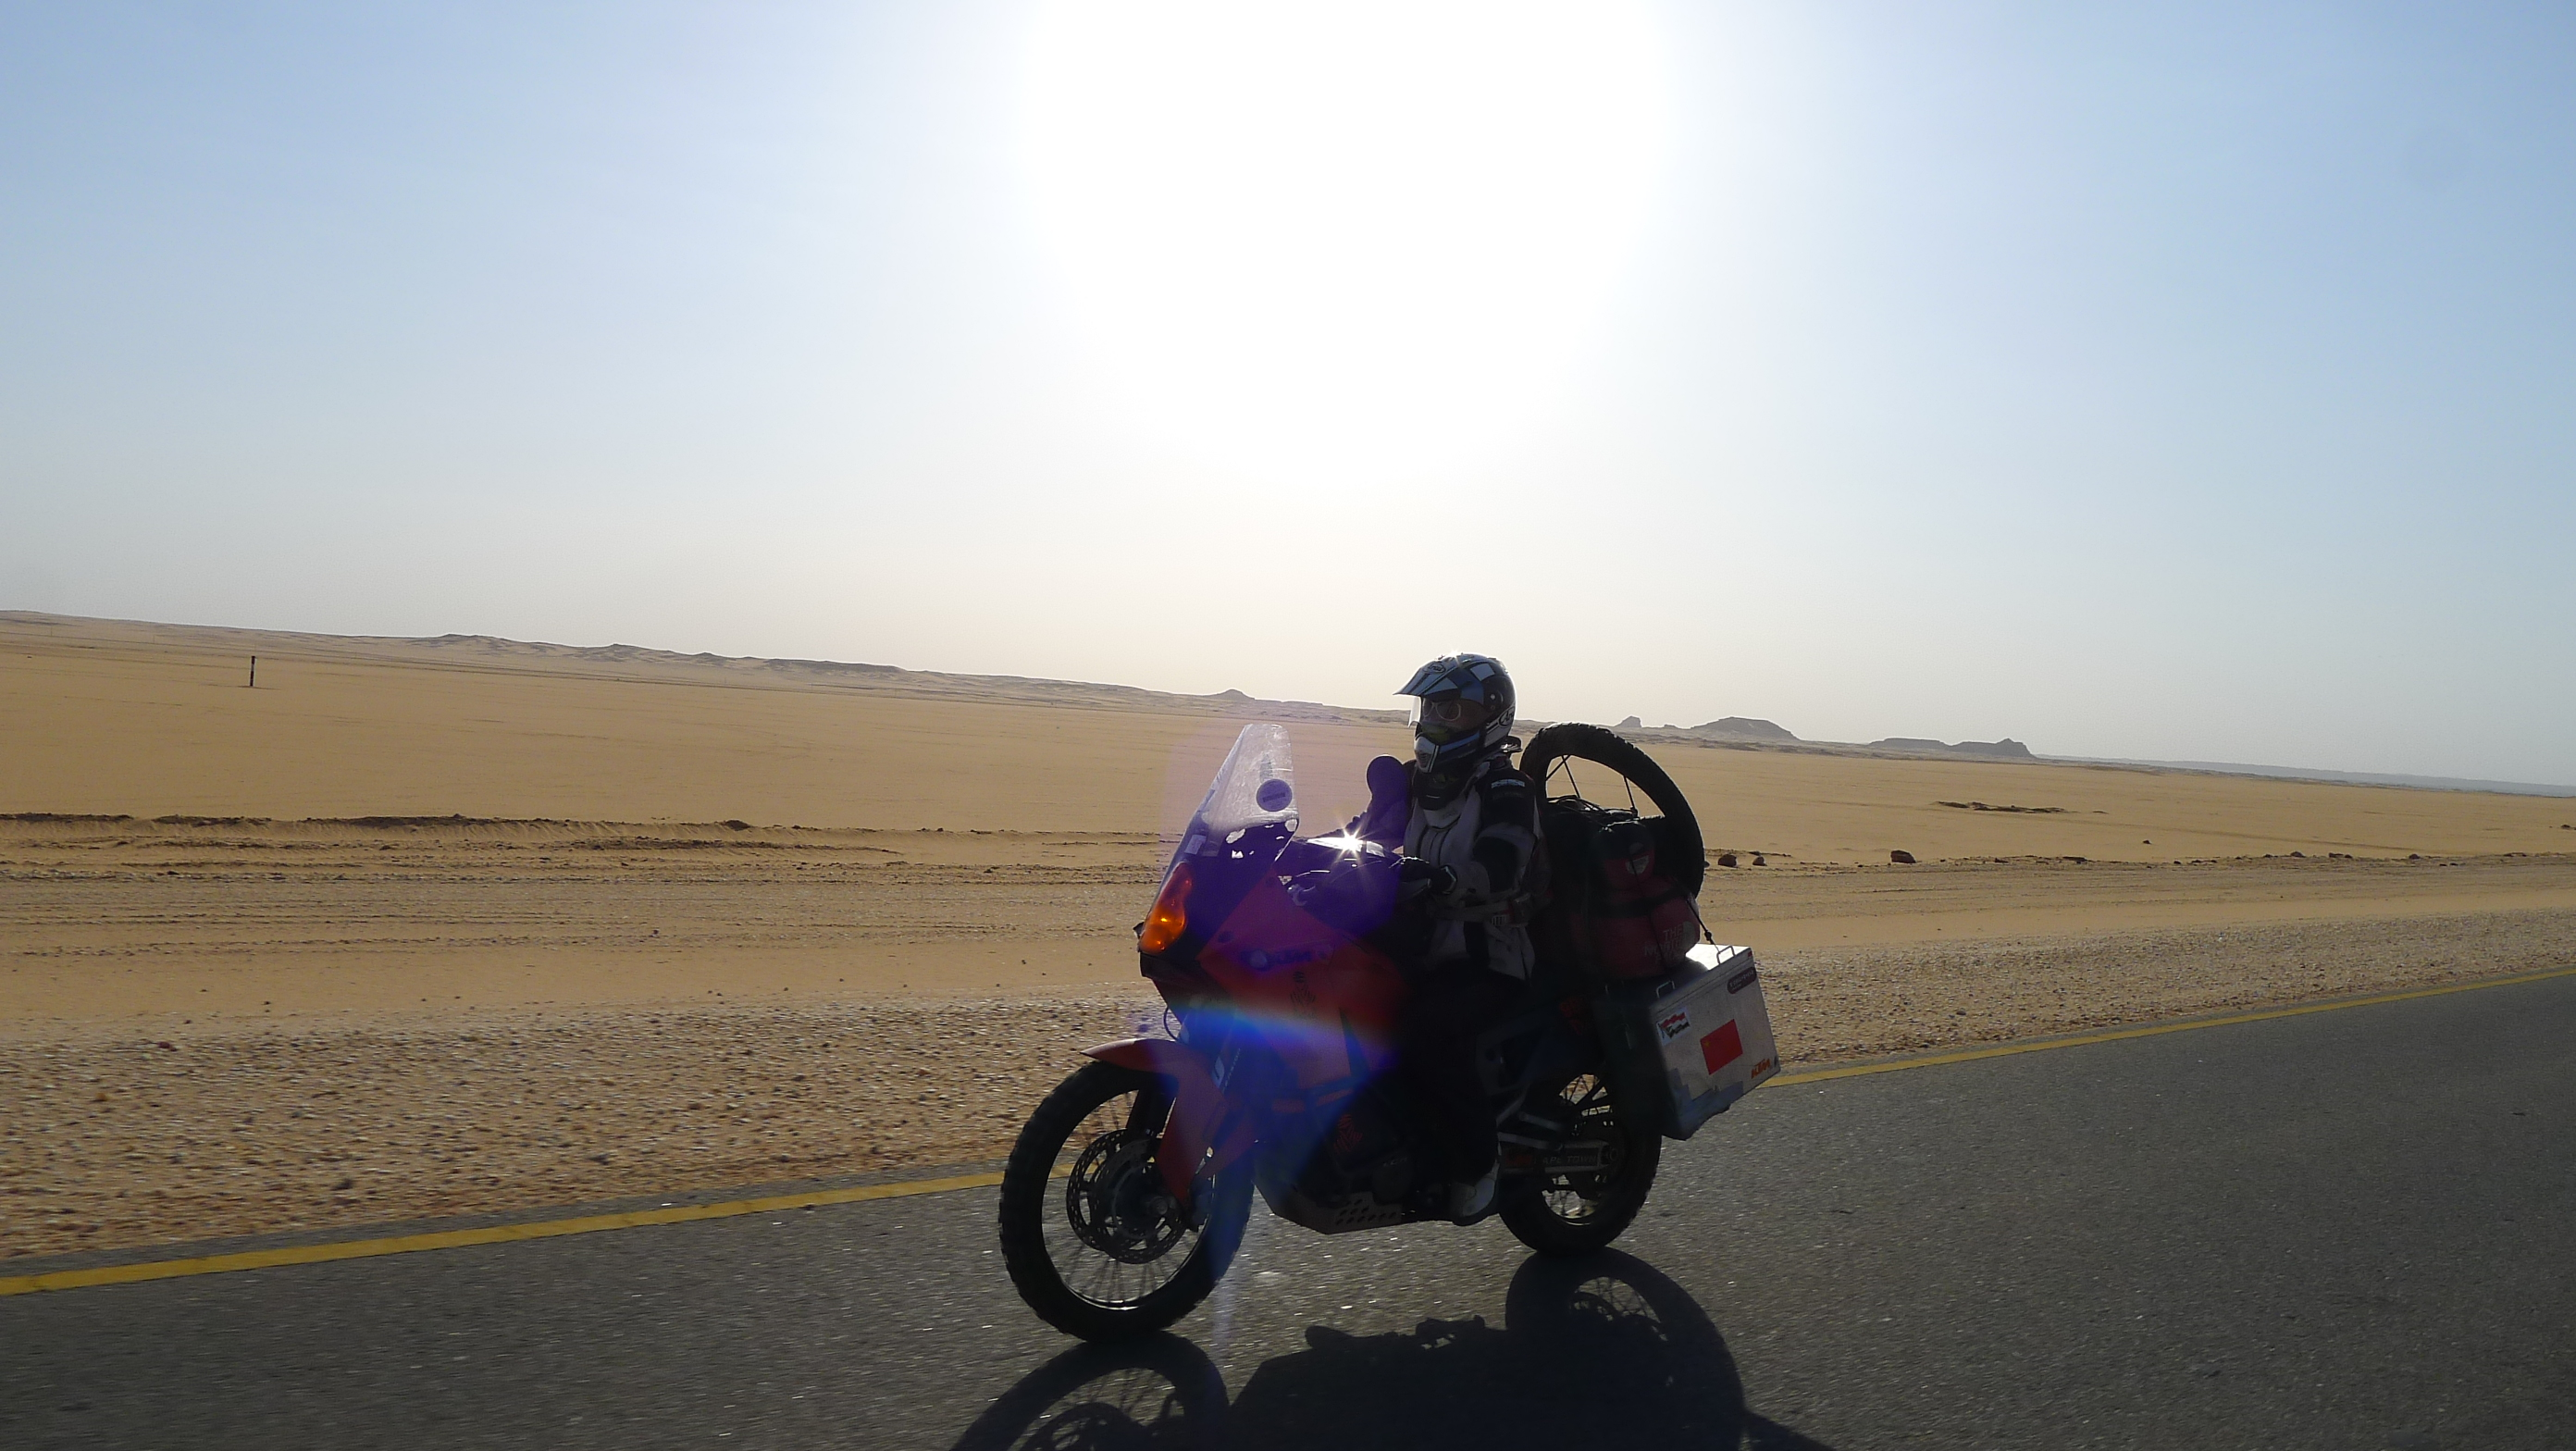 Fanny and her KTM cruising through the Nubian desert.